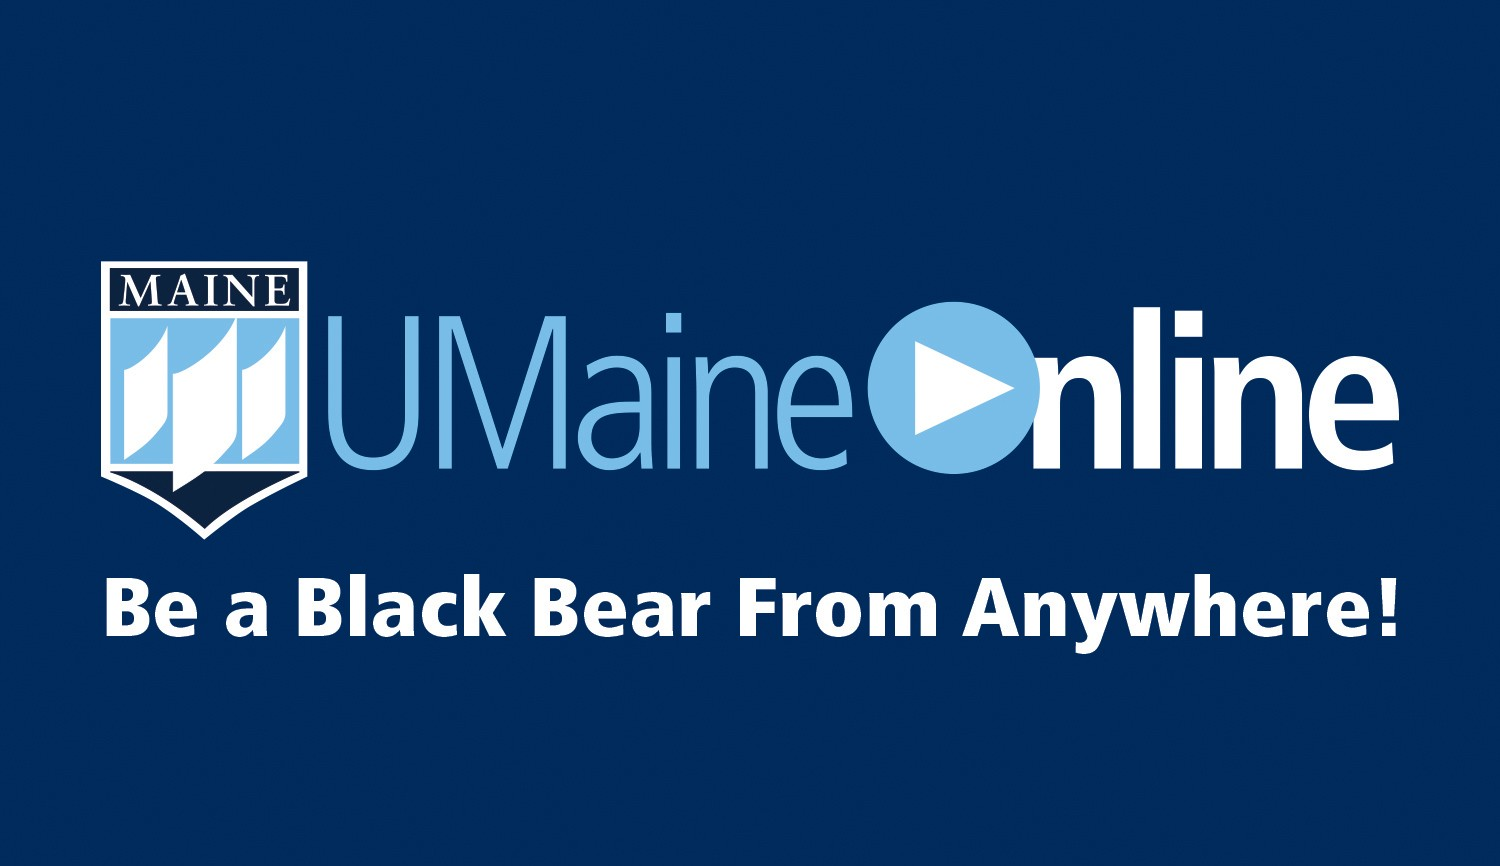 UMaineOnline logo and tagline